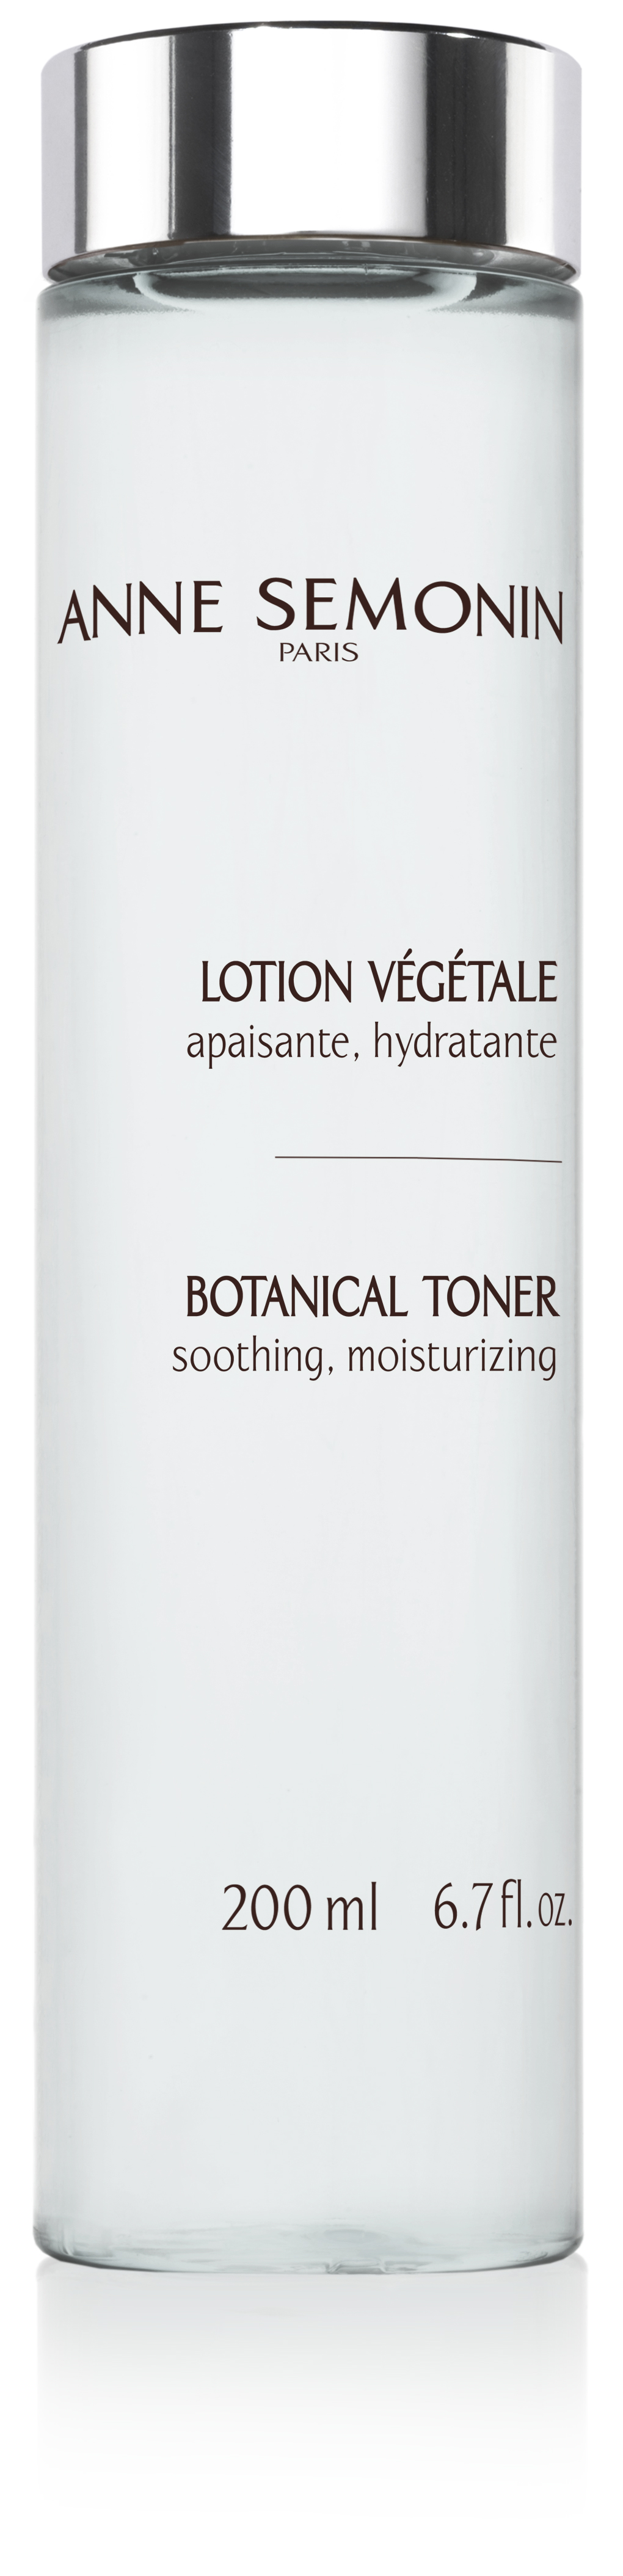 AS_Botanical_toner